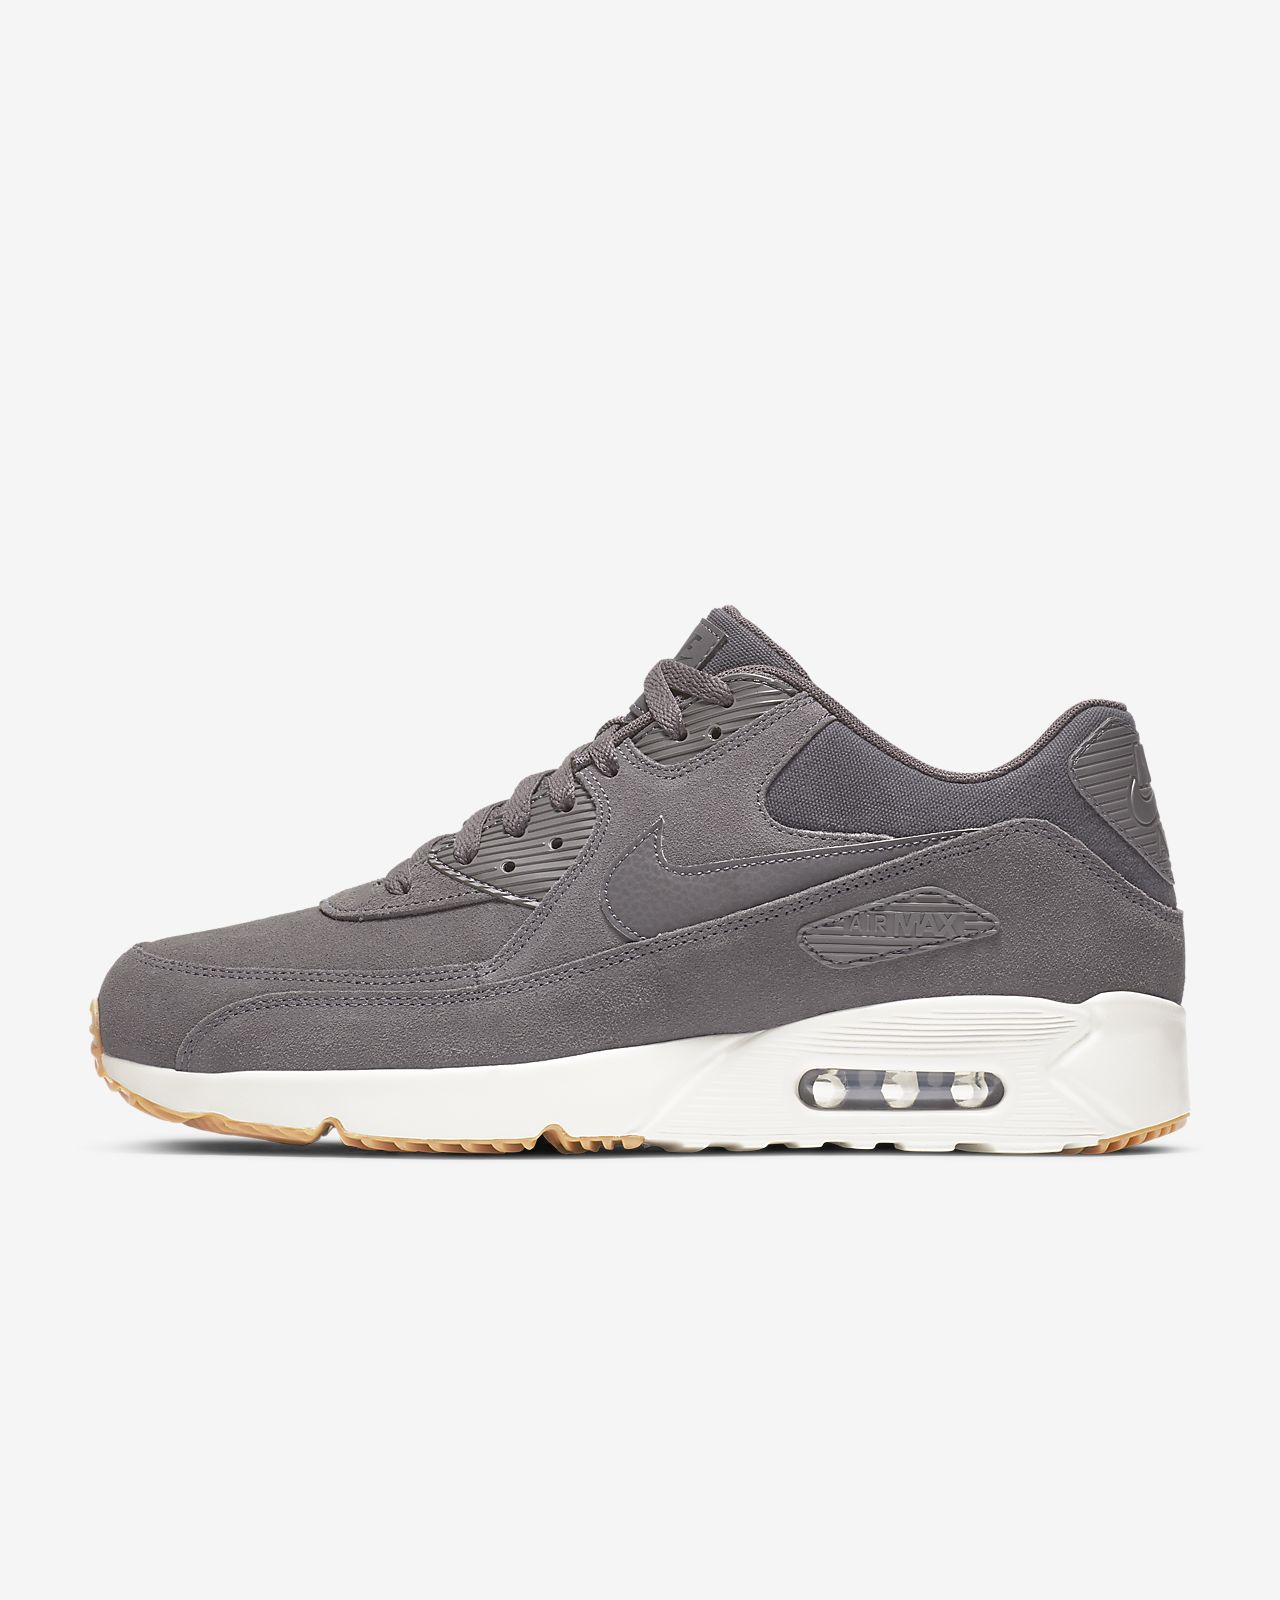 huge selection of aea36 fc56a ... Sko Nike Air Max 90 Ultra 2.0 för män